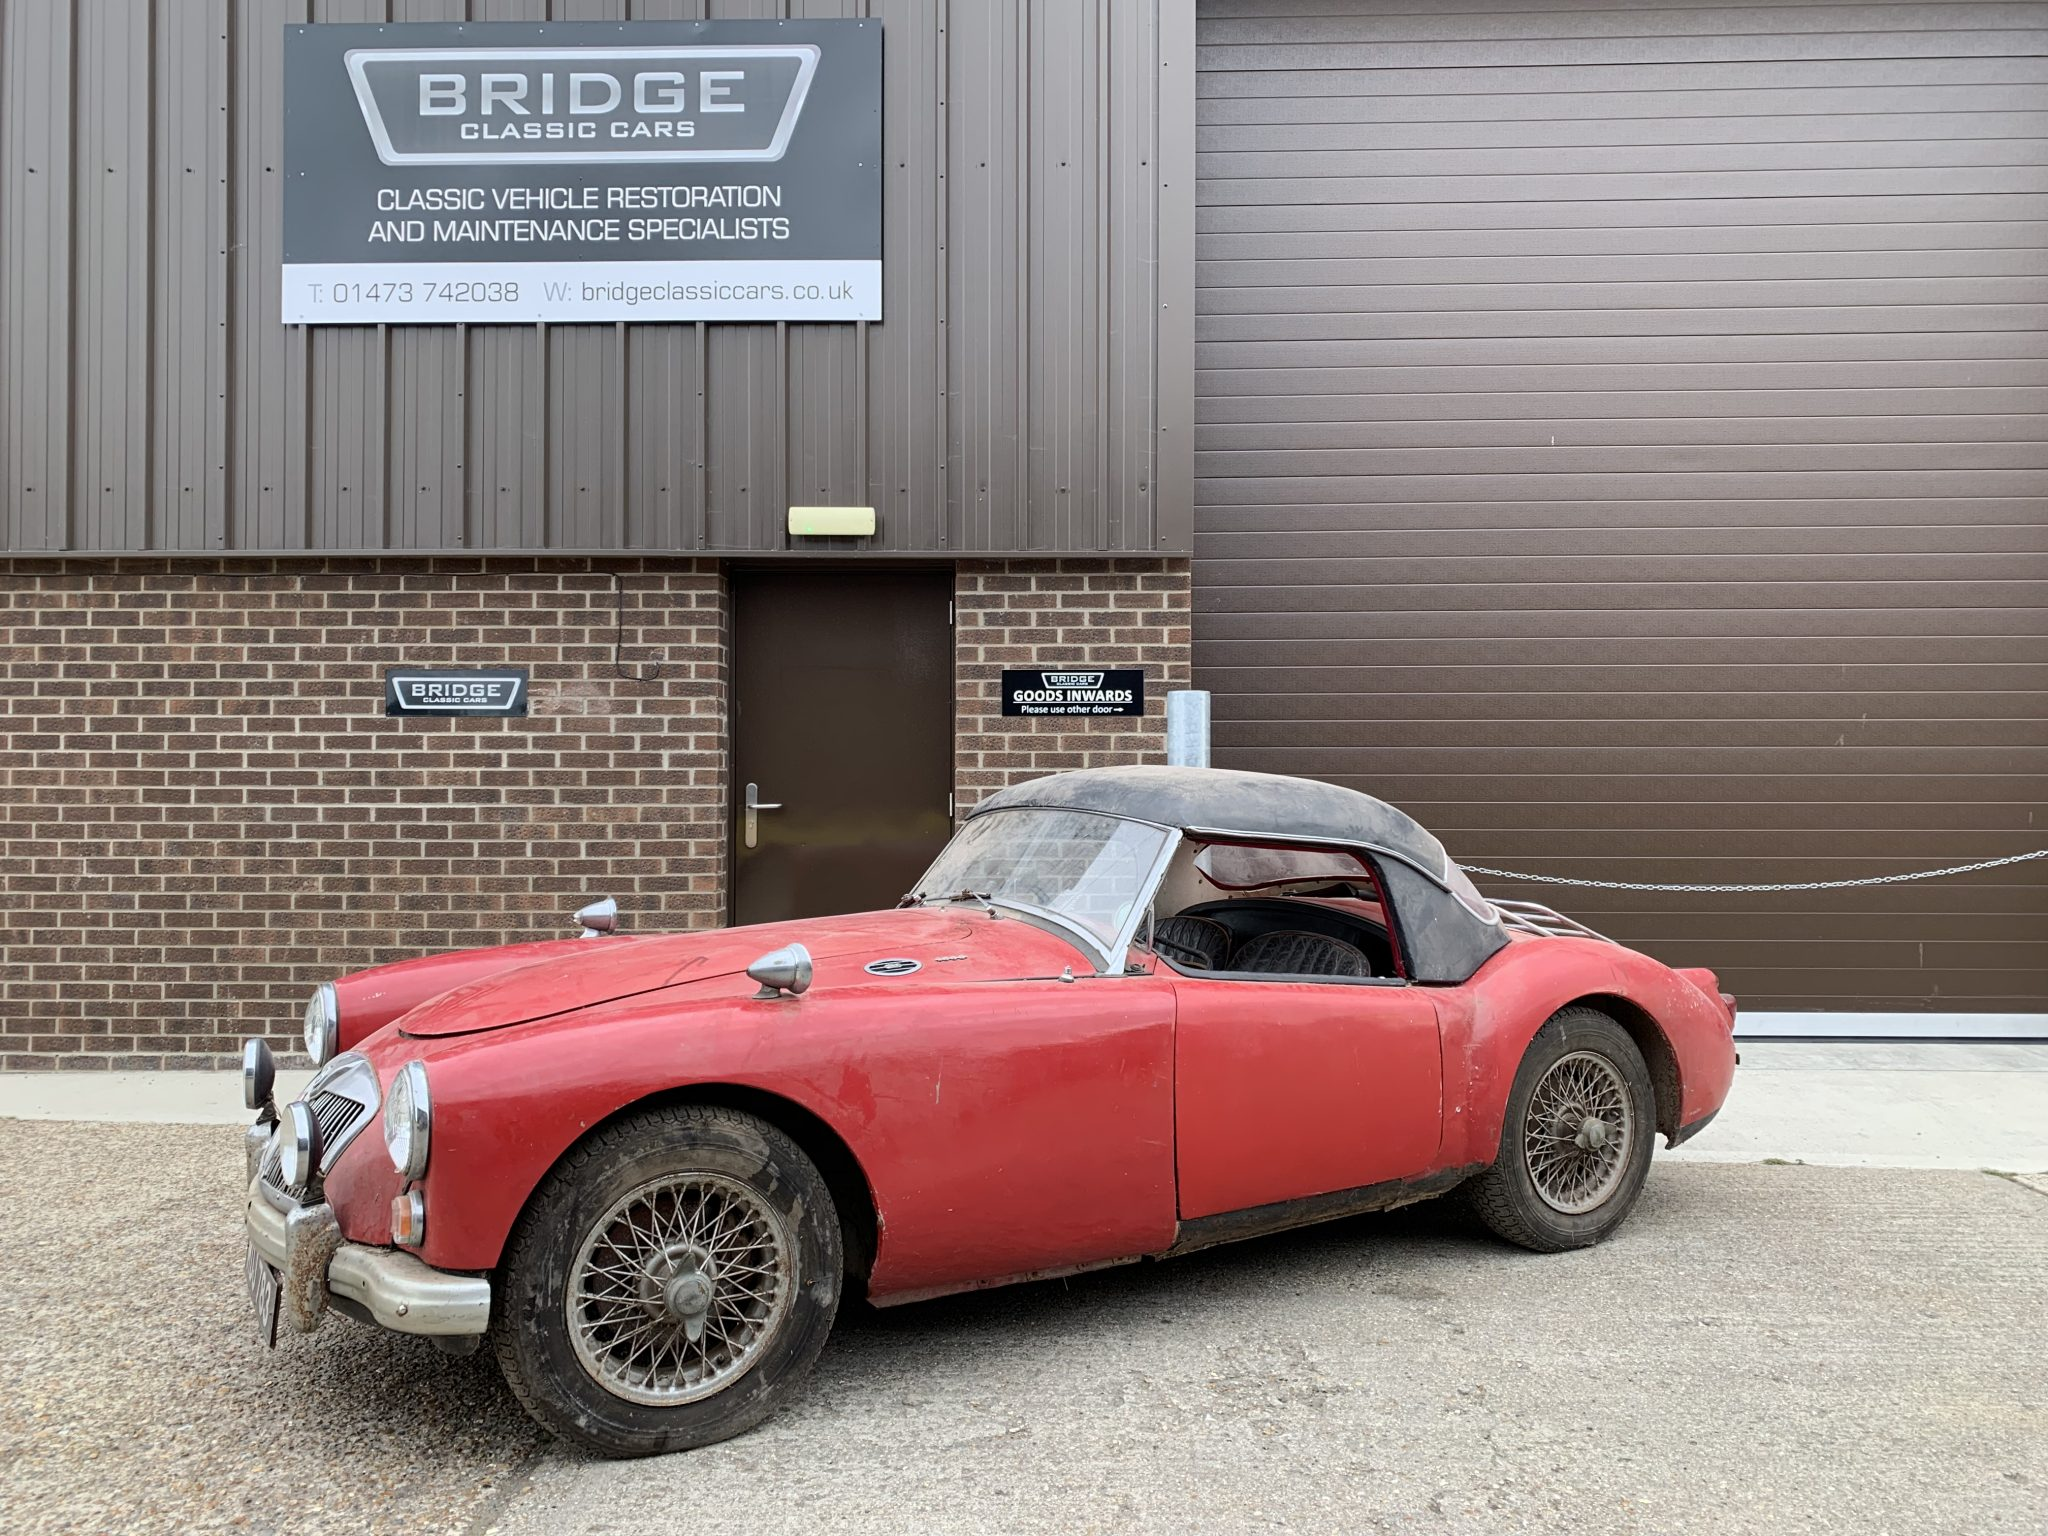 1960 MGA: 26 yrs stored in a barn